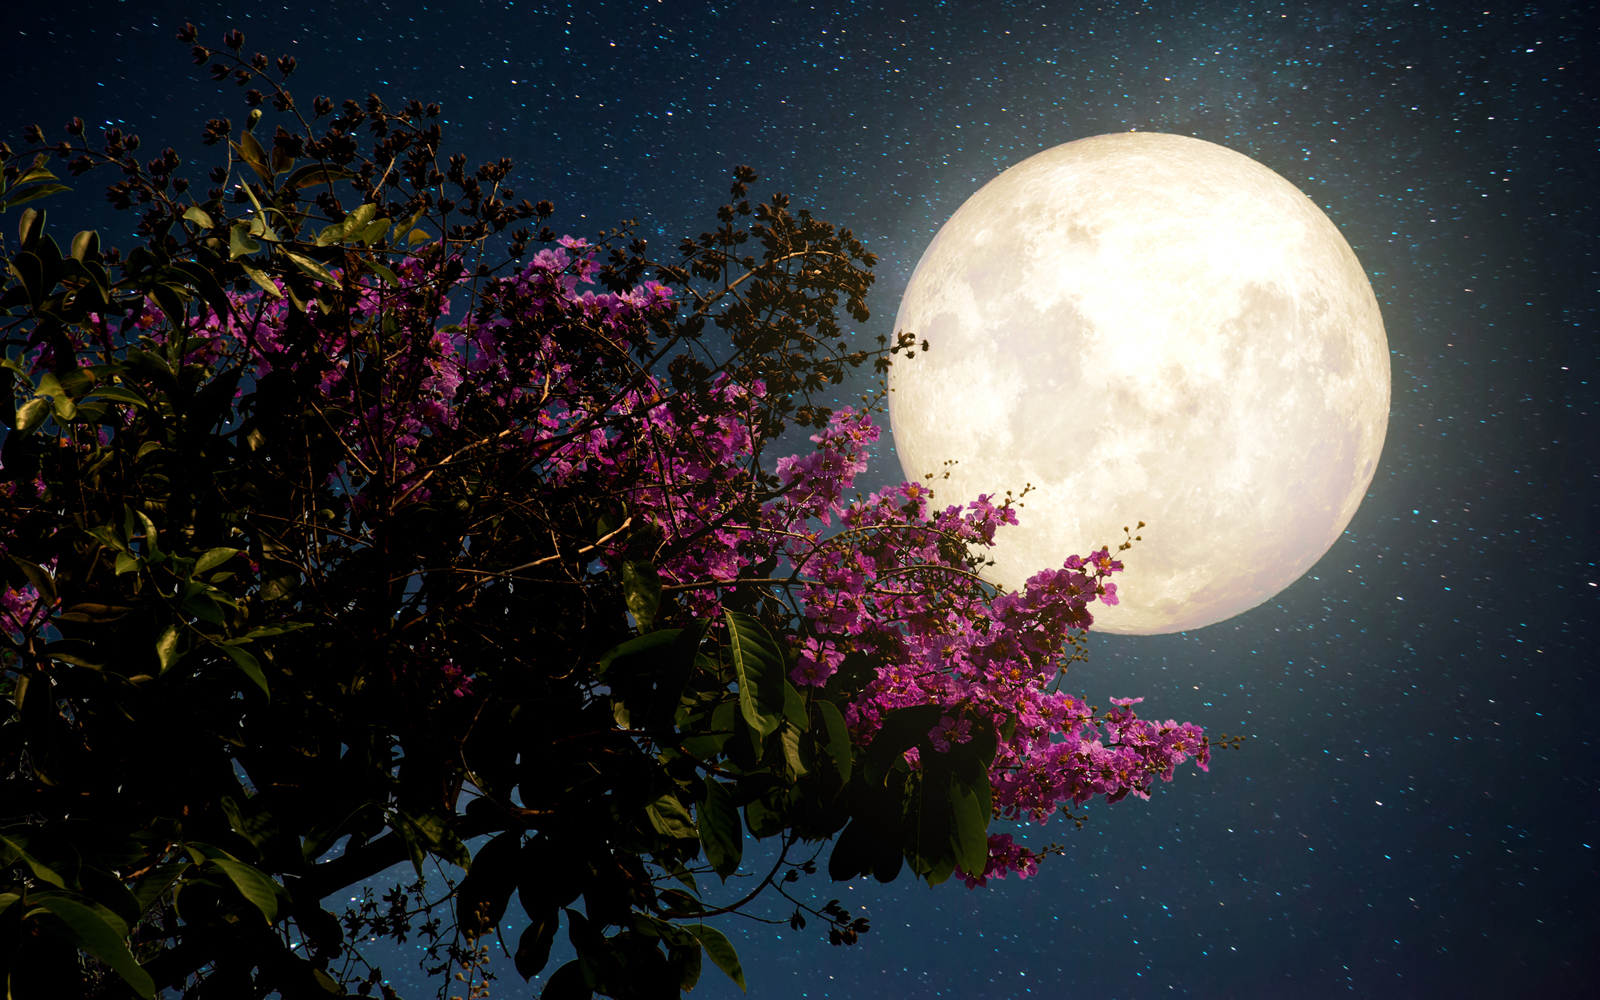 Watch the 'Flower Moon' rise on Wednesday night